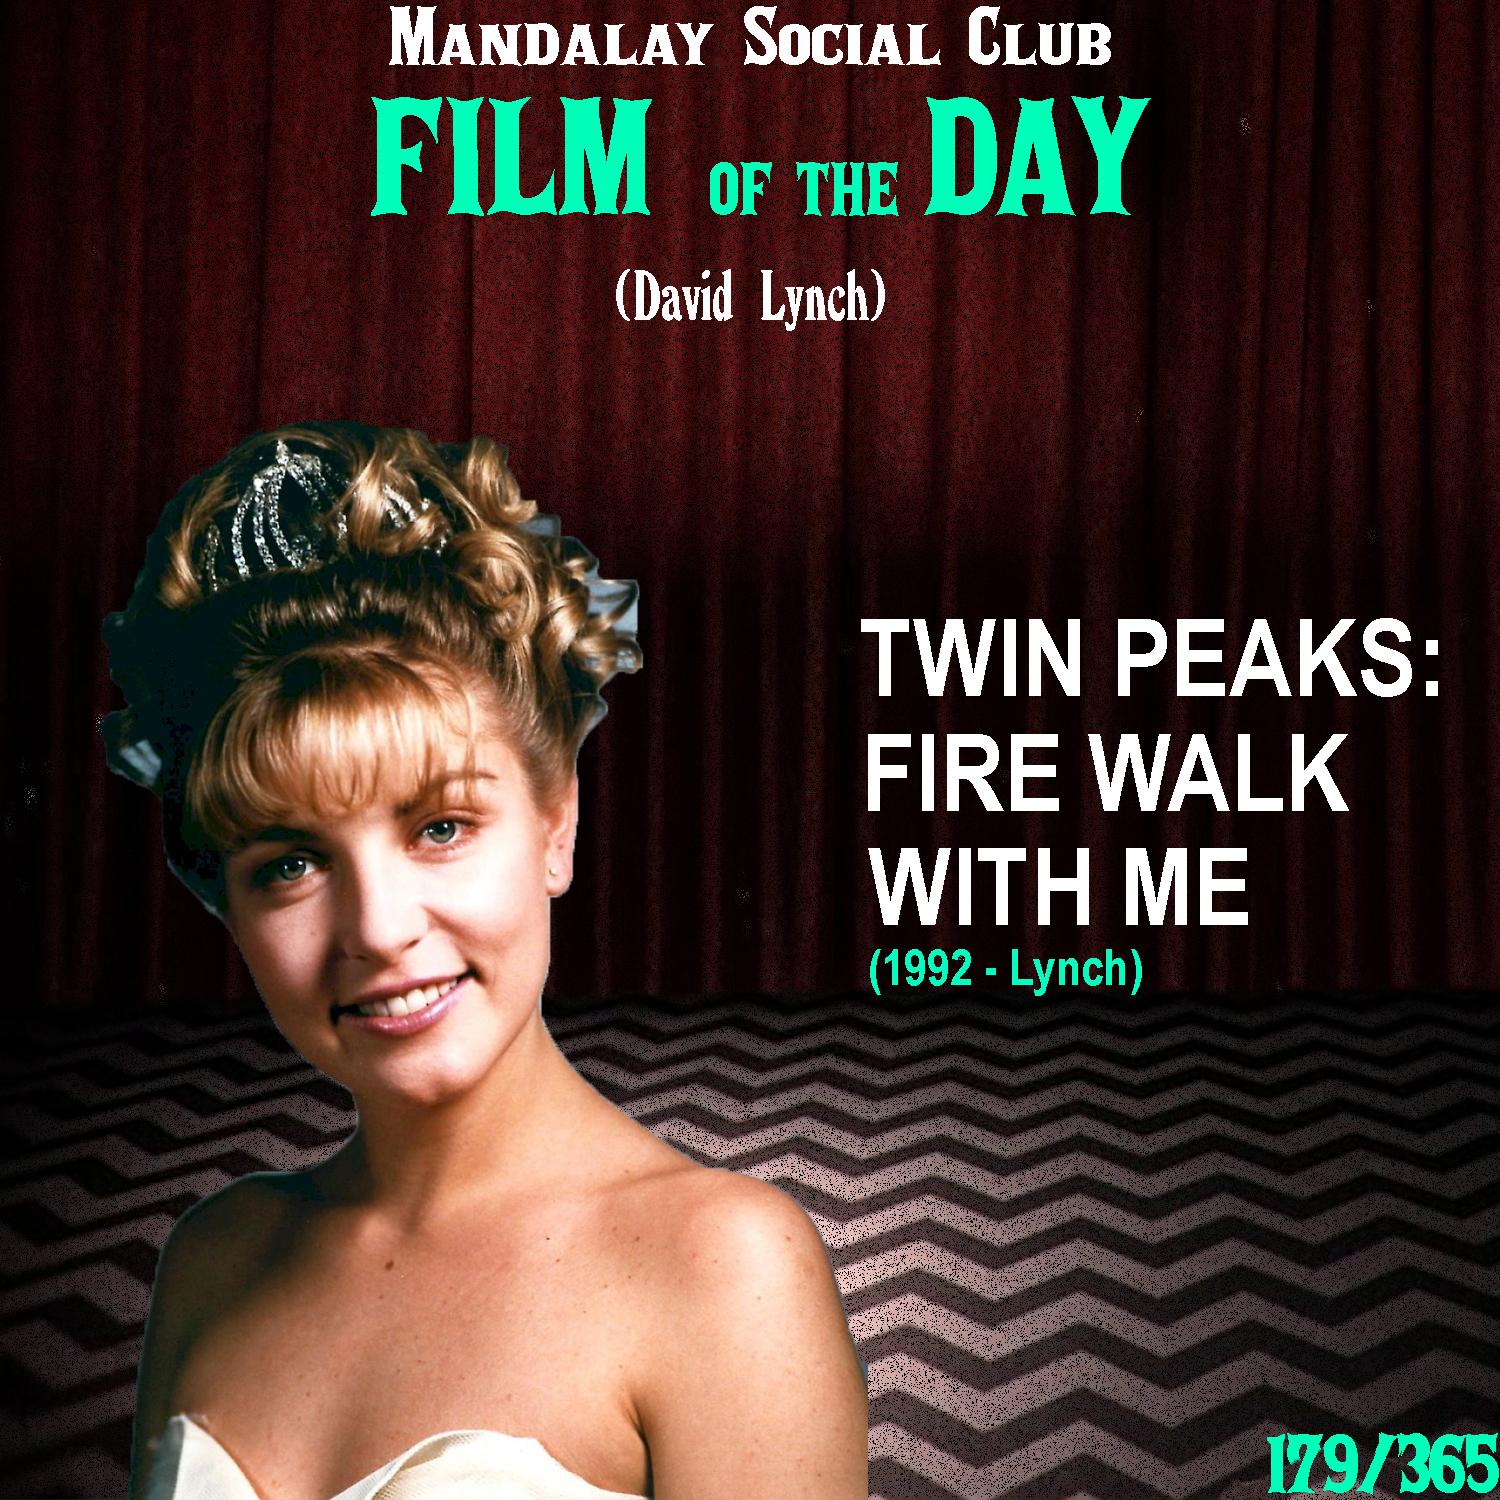 TWIN PEAKS: FIRE WALK WITH ME     (dir. David Lynch)   After ABC practically ruined Lynch's acclaimed television show  Twin Peaks , David was eager to get back into the  Twin Peaks  world and decided to make this prequel film that takes place right before the death of Laura Palmer!  The film opens with two FBI agents played by Chris Isaak and Keifer Sutherland, who arrive in Washington to investigate the murder of a young girl named Theresa Banks. During the investigation, Chris Isaak's character, Chet Desmond goes missing. The film then picks up in Twin Peaks, documenting the final days of Laura Palmer's life.  The film doesn't include many of the characters from the series, most of which declined in fear of being typecast, but it allowed David to expand the world and build up the mystery surrounding the death of Laura Palmer.  Fire Walk With Me  doesn't provide any answers fans were looking for at the end of the series, in fact it introduced us to even more questions surrounding the story. It is possibly the most avant garde film in his filmography and without seeing  Twin Peaks , this film acts as nothing more than random expressions of surrealism. Hell, even as a Twin Peaks fan it still feels that way.  This isn't a film that can be digested in one, two, or even three viewings. This film is like a fine wine and only gets more intriguing after each viewing.    4/5     WATCH: The Criterion Channel